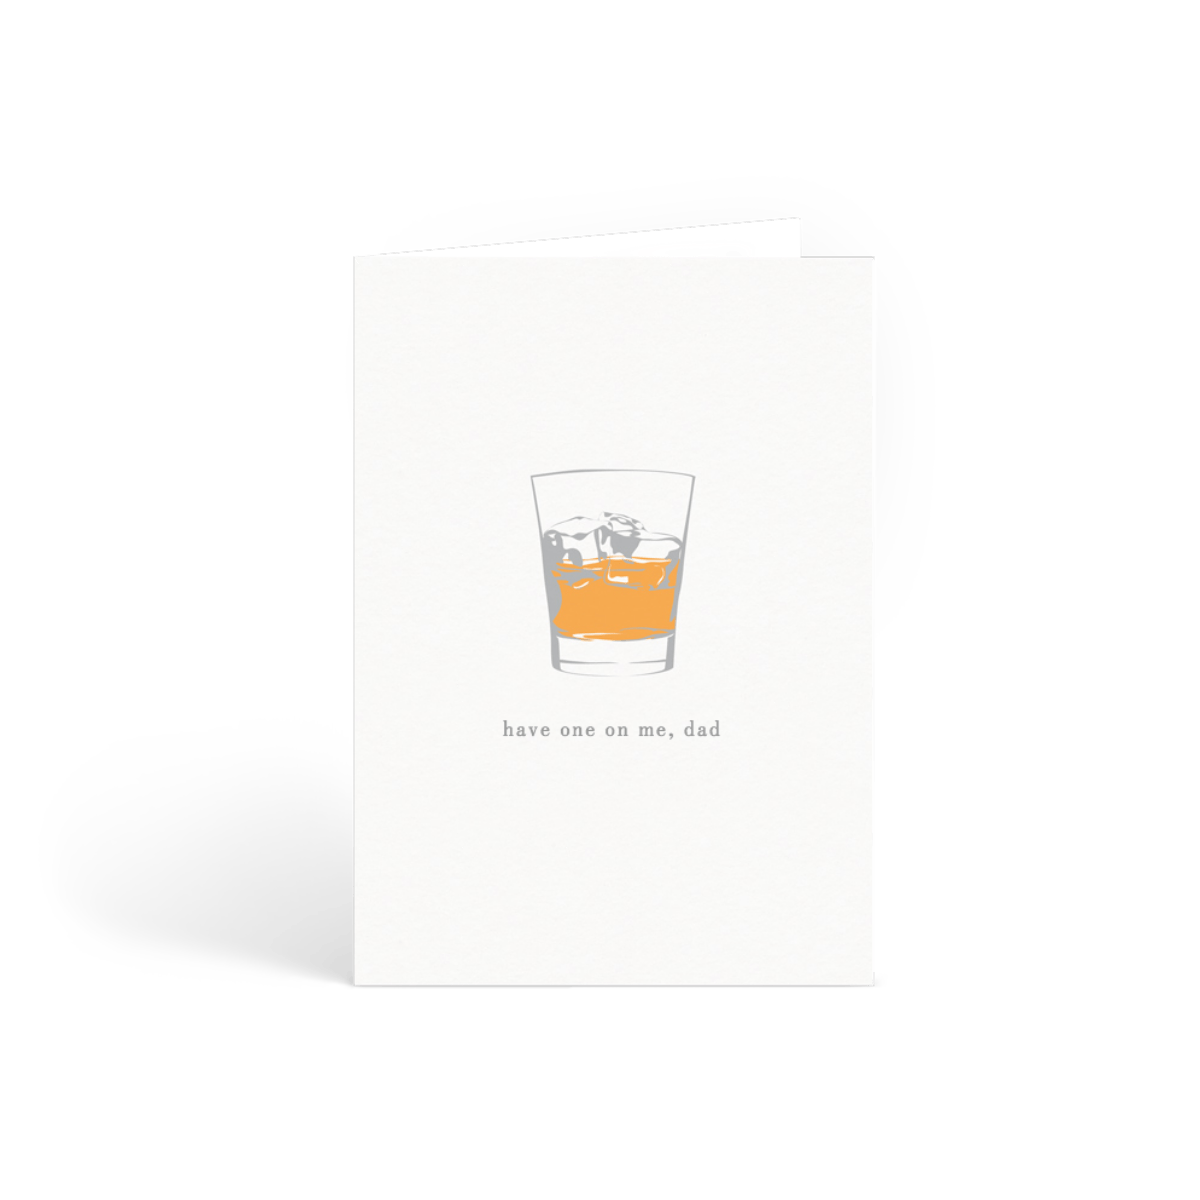 Https%3a%2f%2fwww.papier.com%2fproduct image%2f5074%2f2%2ffather s day whiskey 1320 front 1581453529.png?ixlib=rb 1.1